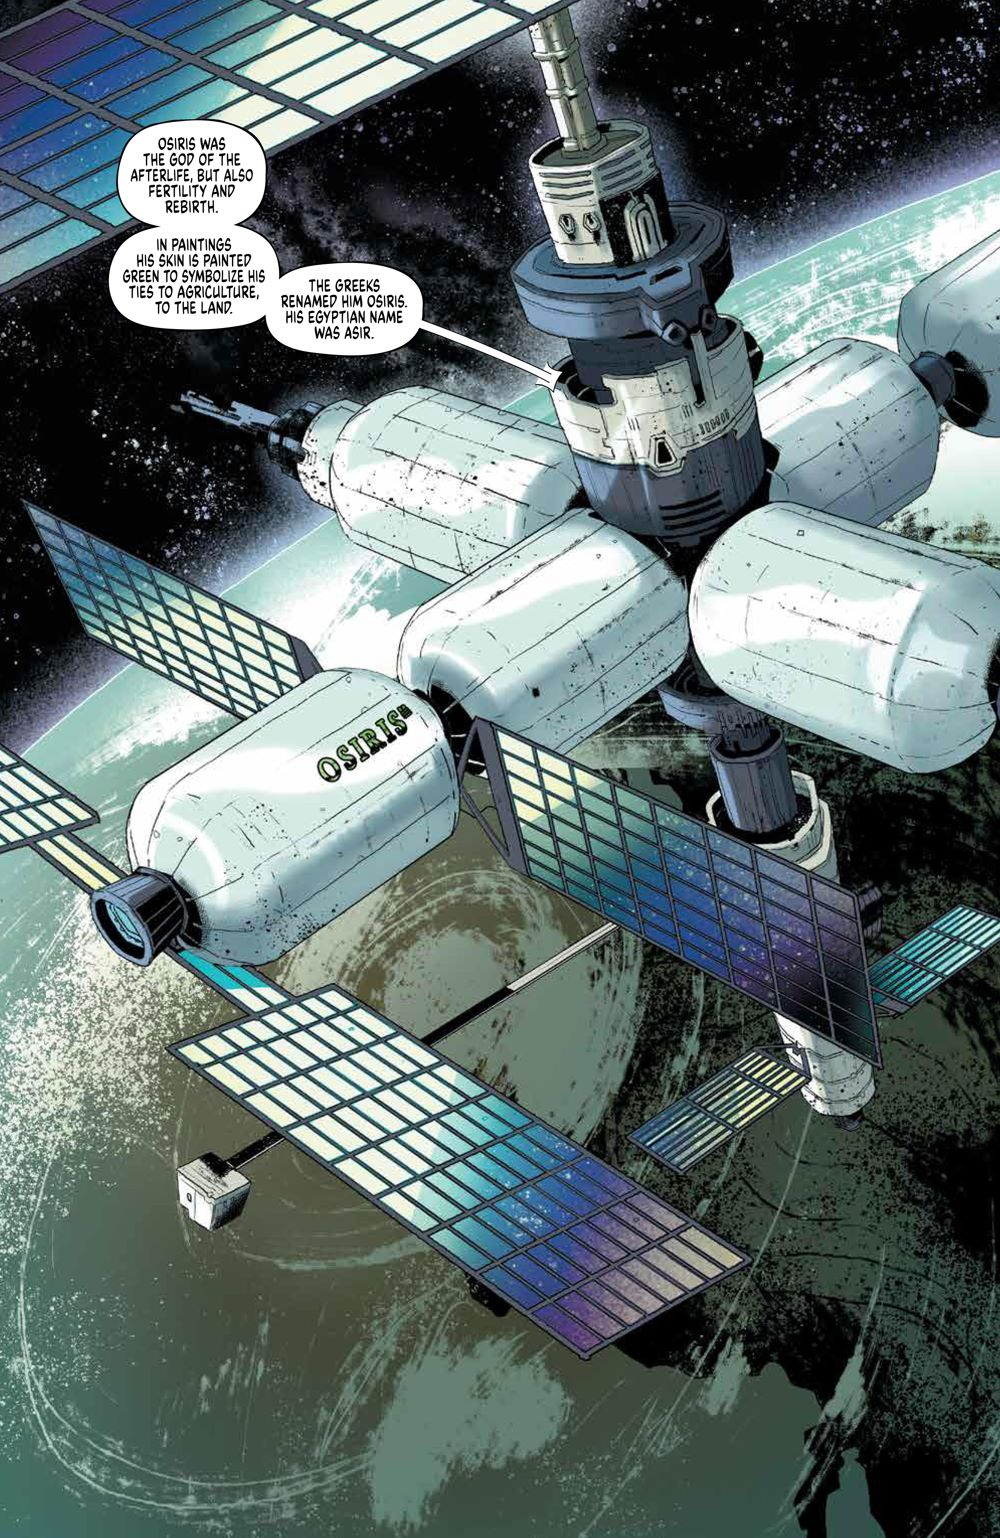 Eve_002_PRESS_4 ComicList Previews: EVE #2 (OF 5)